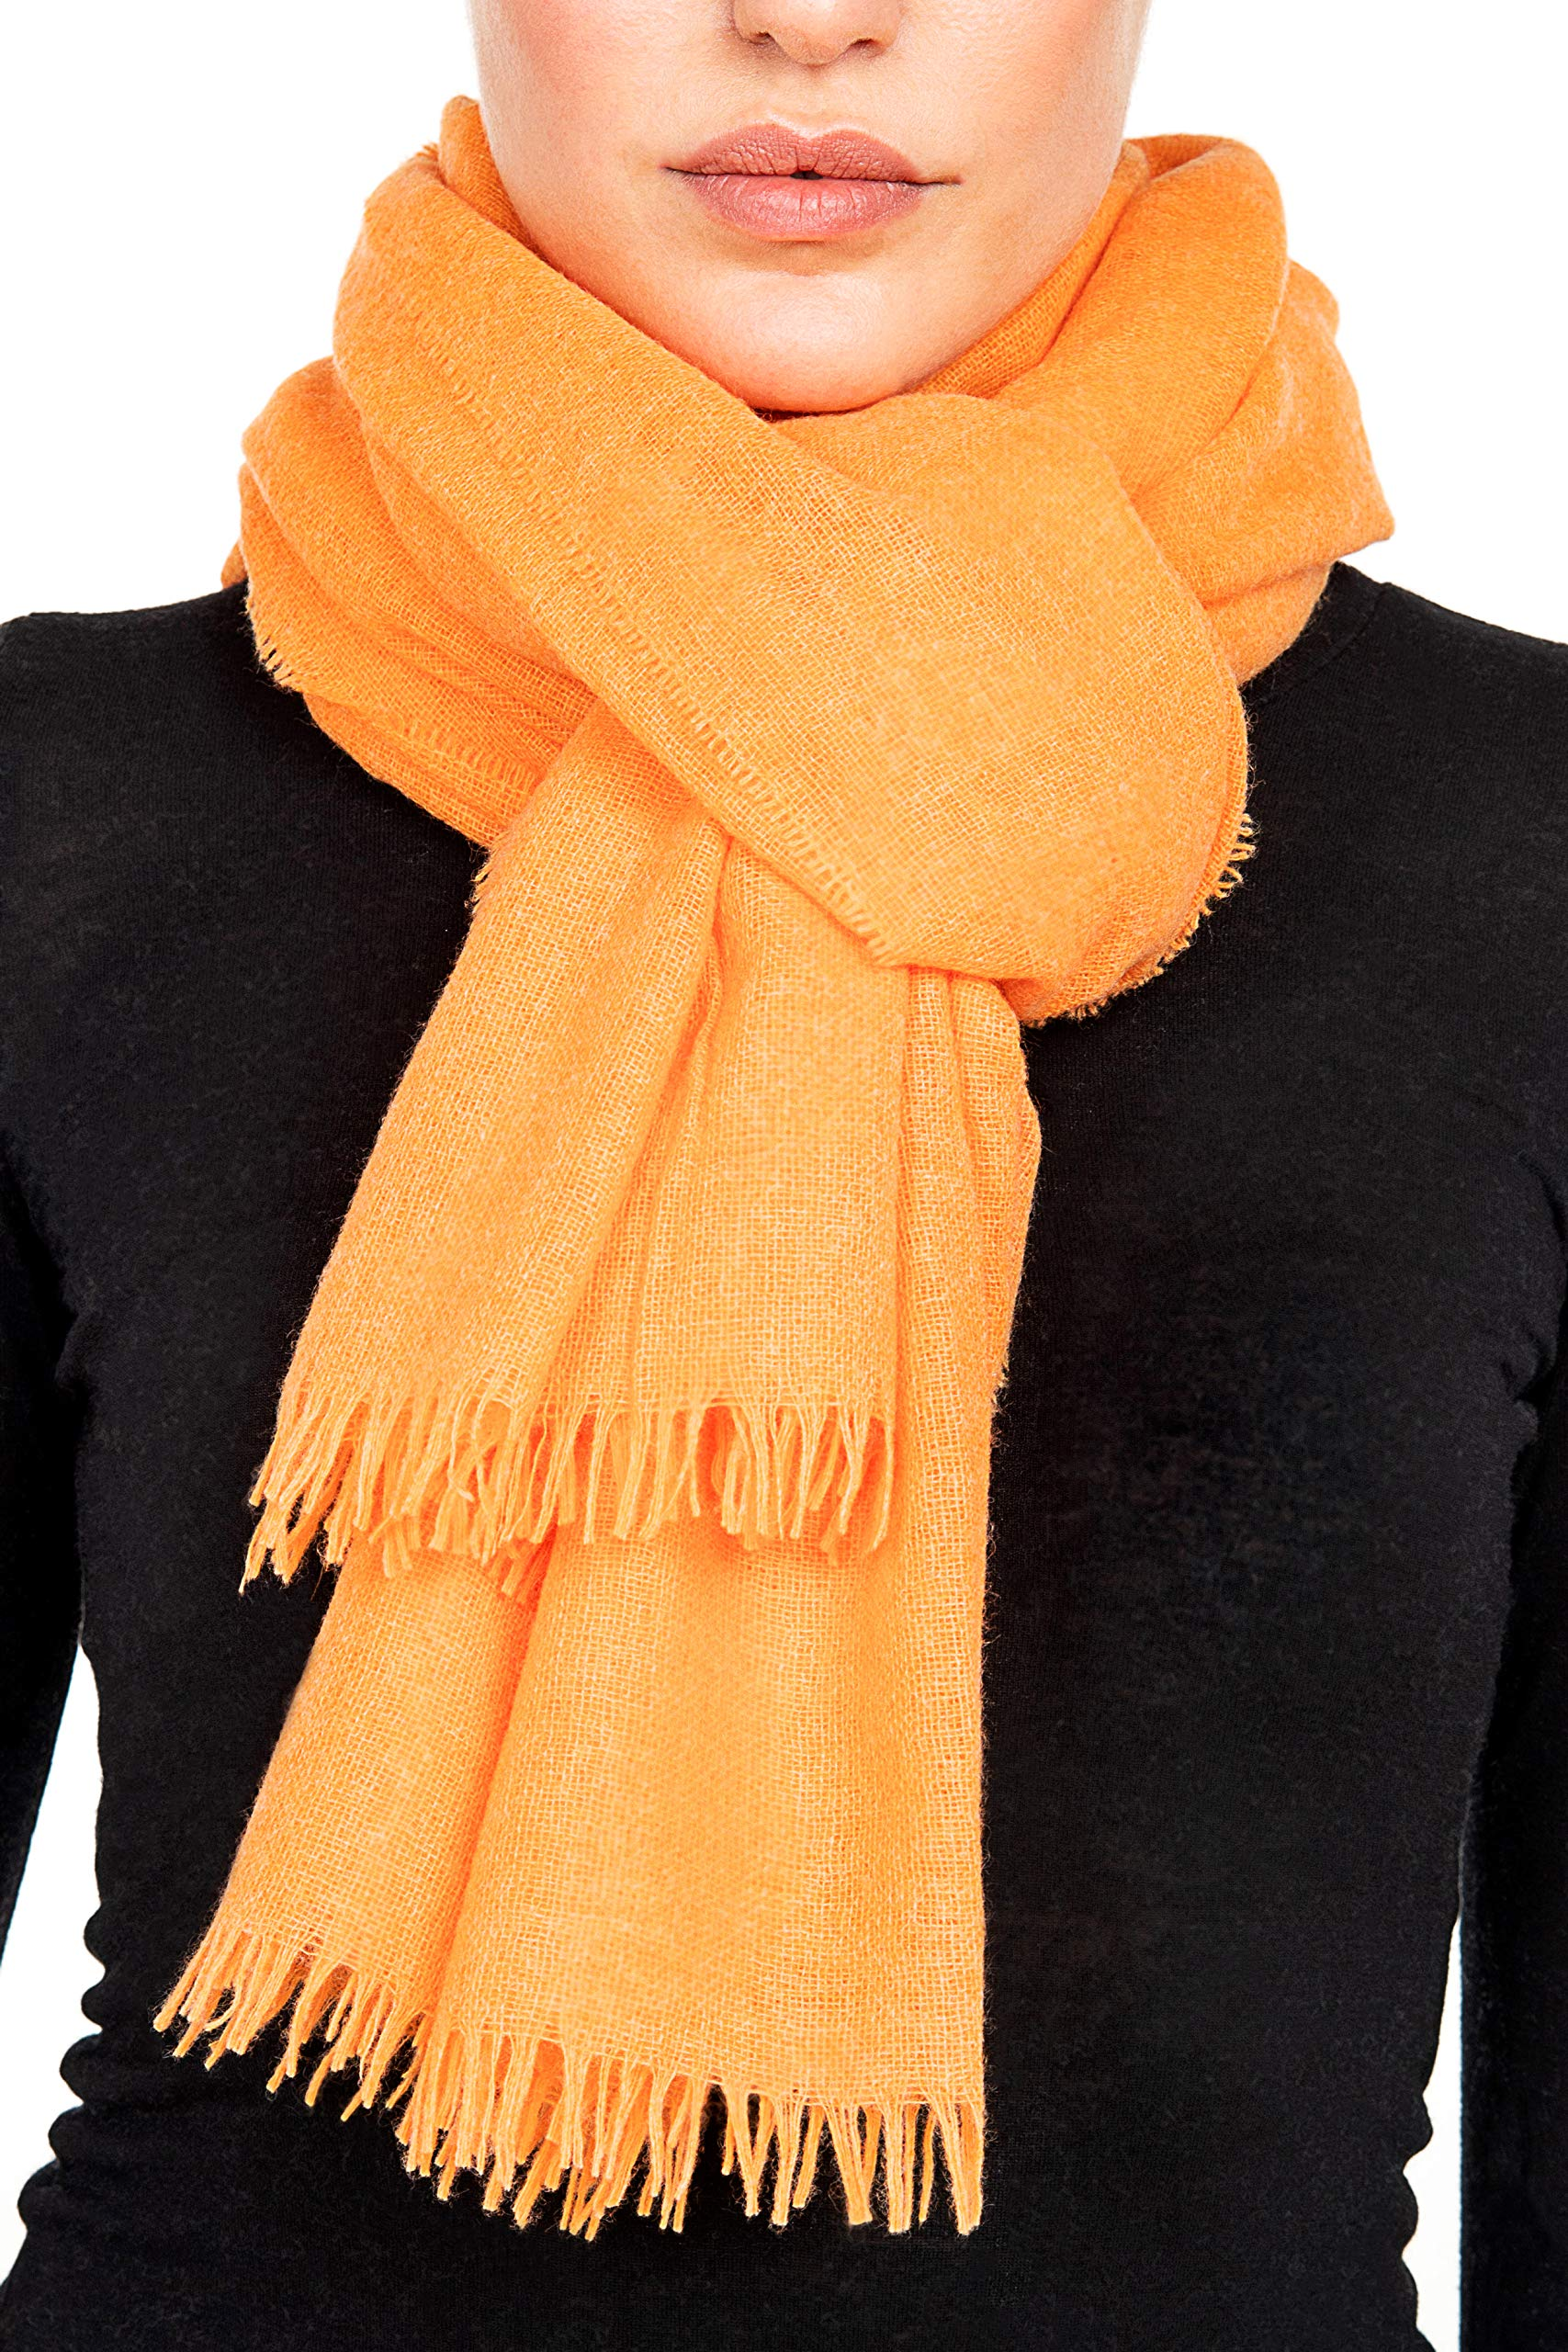 GIULIA BIONDI Cashmere Scarf Shawl Wrap Stole Soft Warm Large Women Men MADE IN ITALY (Orange)